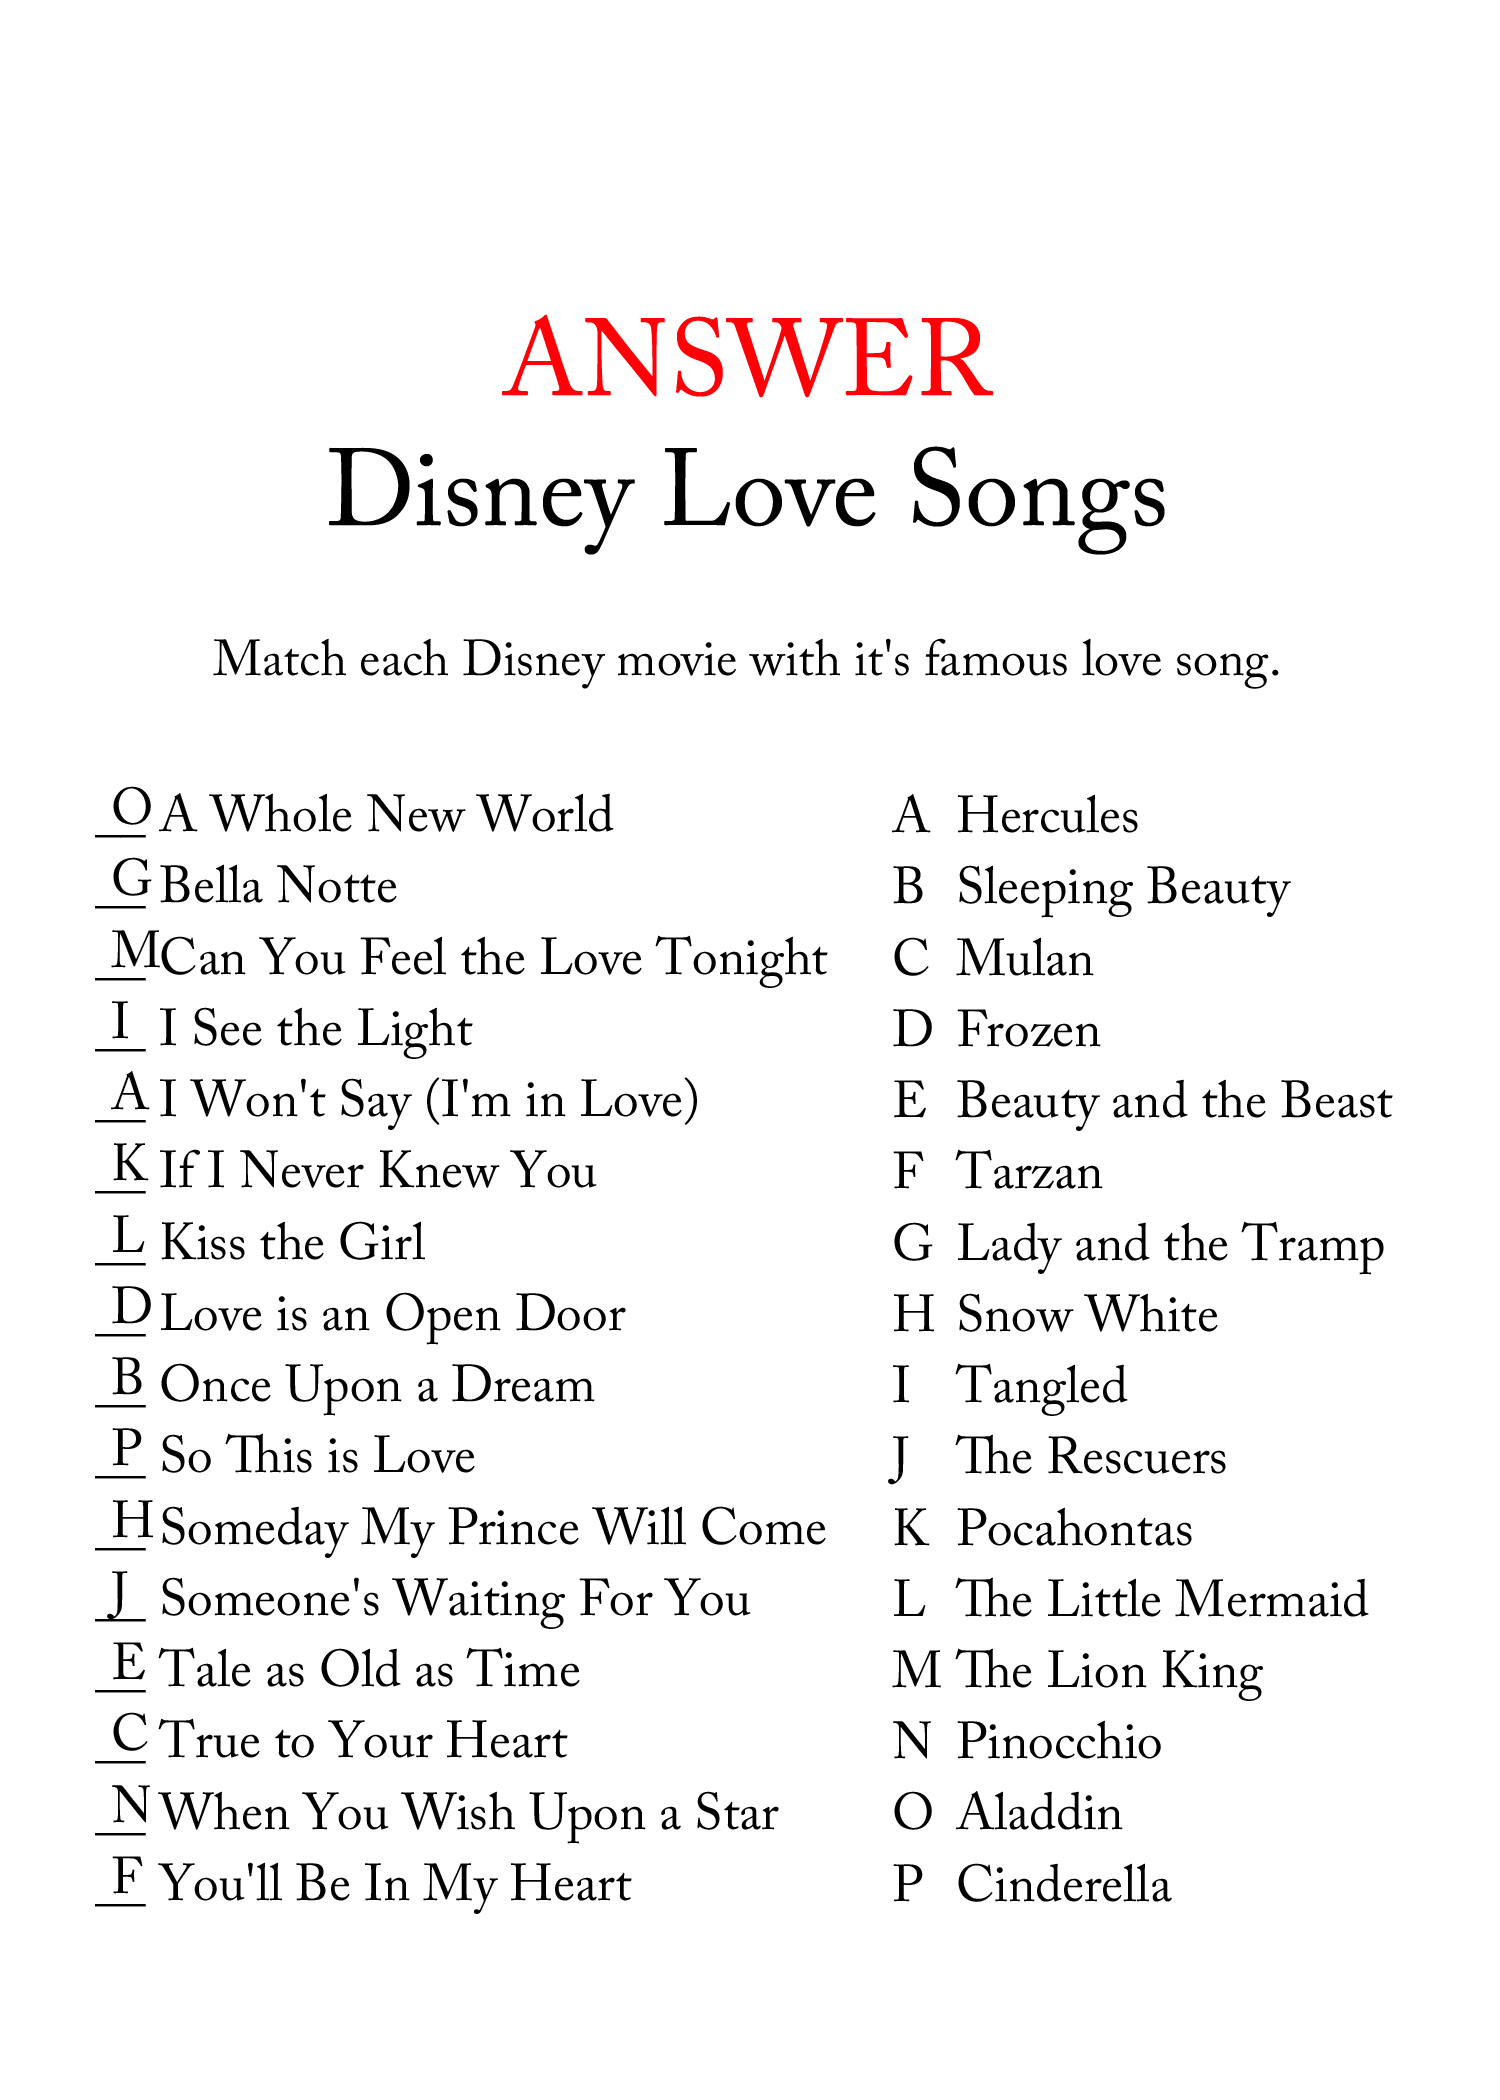 FREE Disney Love Song Bridal Shower Game - Bridal Shower